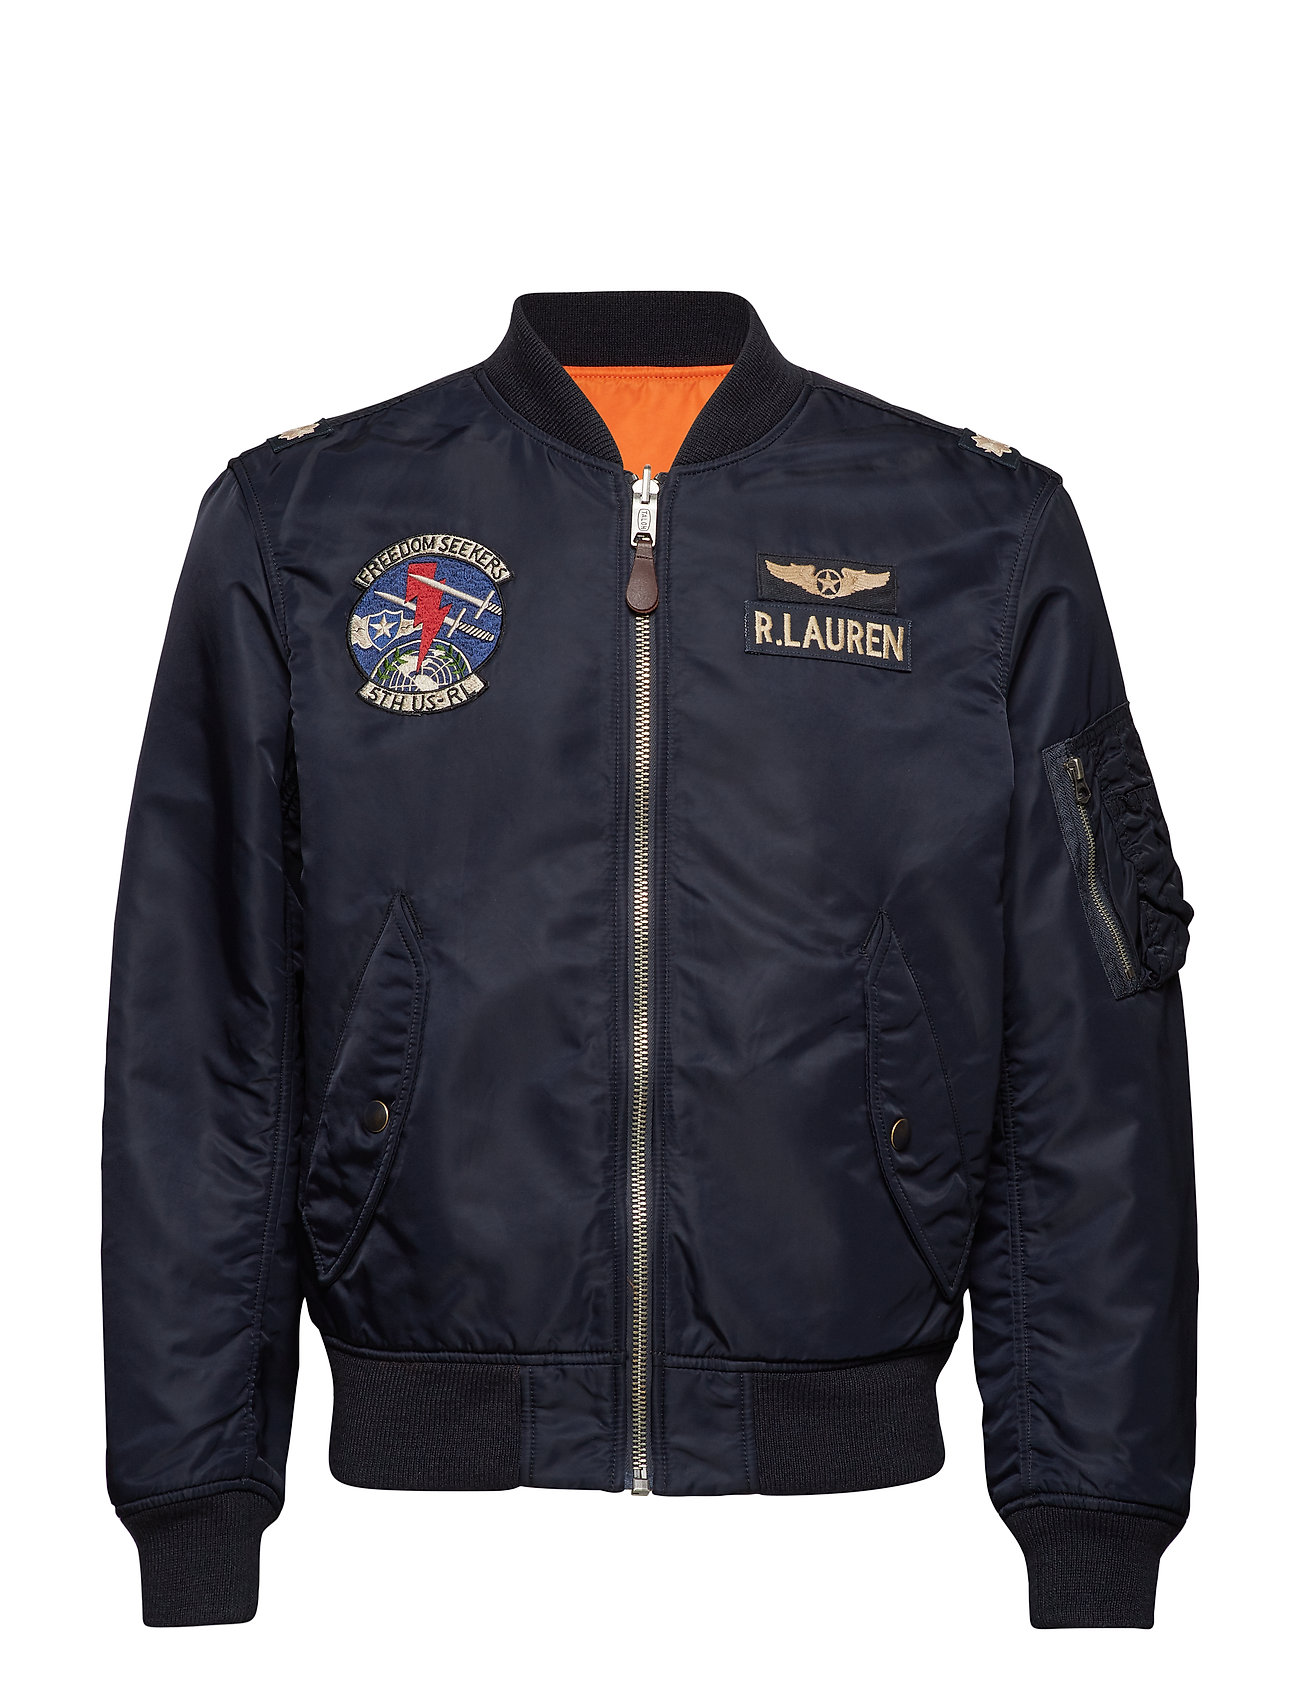 Polo Ralph Lauren MA1 BOMBER-LINED-JACKET